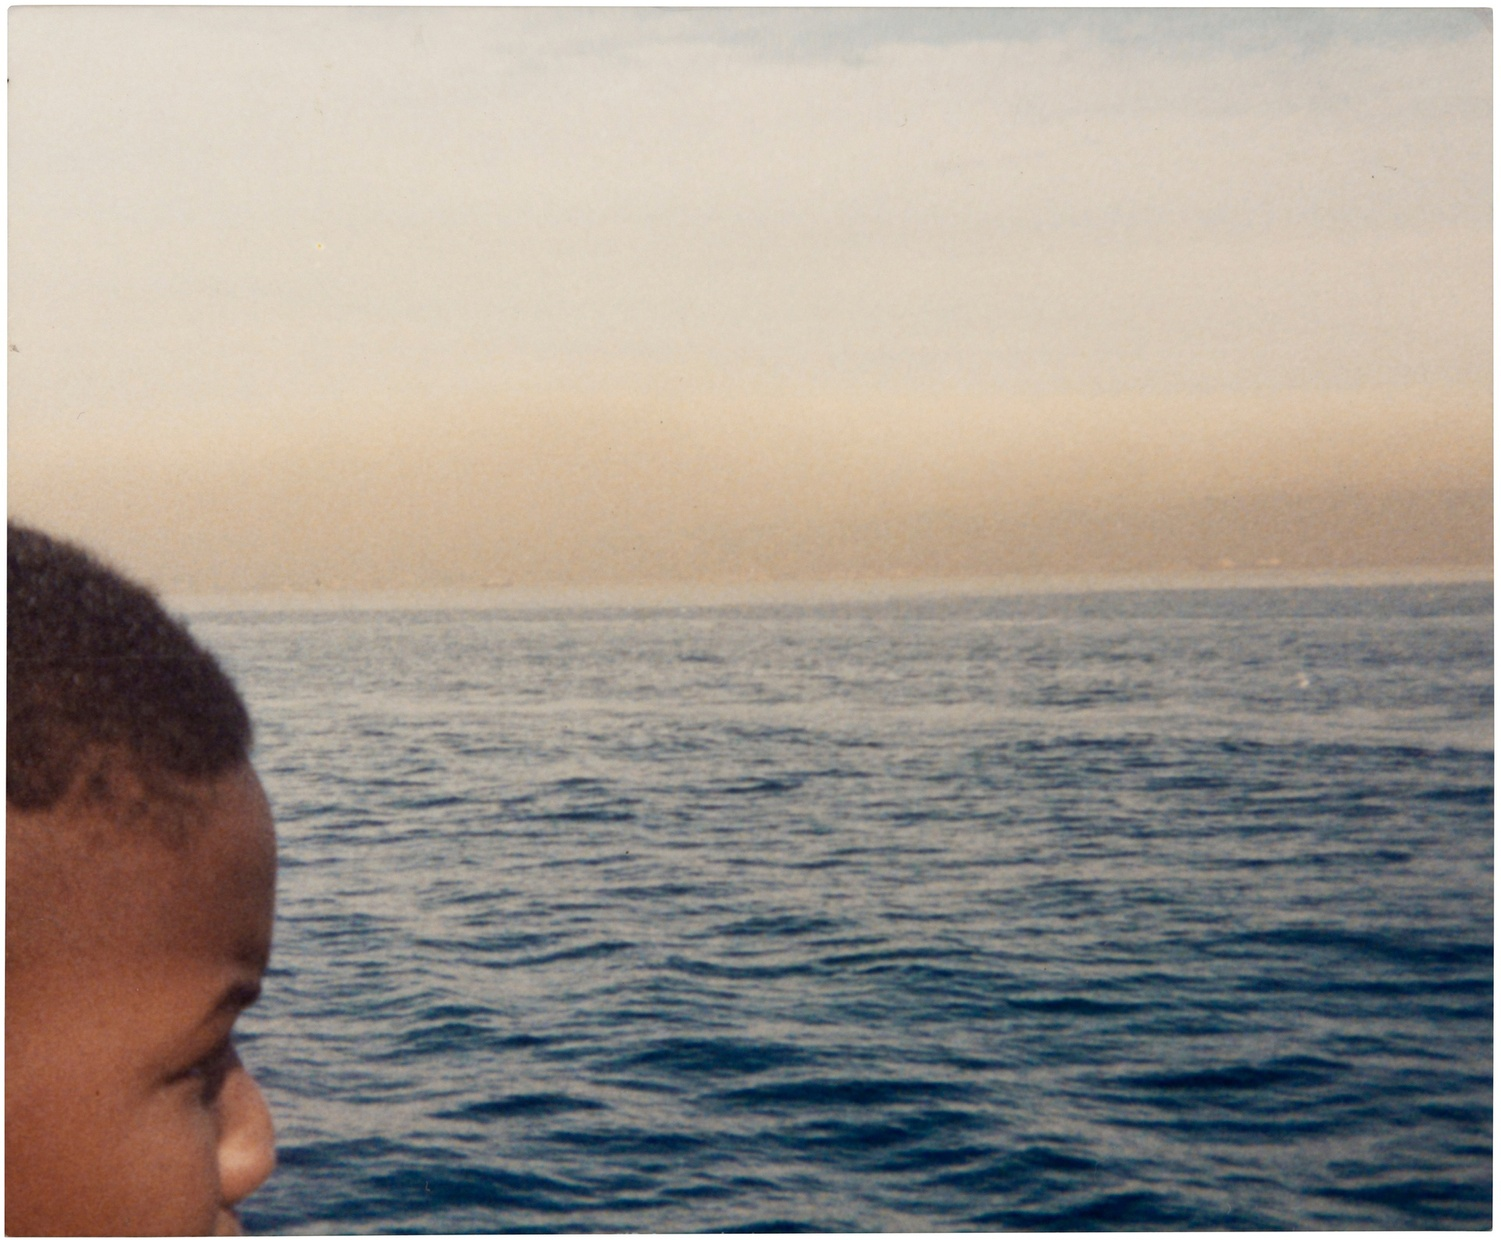 A photograph by an unknown artist of a vast body of water and a young dark-skinned boy, partially in view, looking out over the landscape form the left side of the photo.